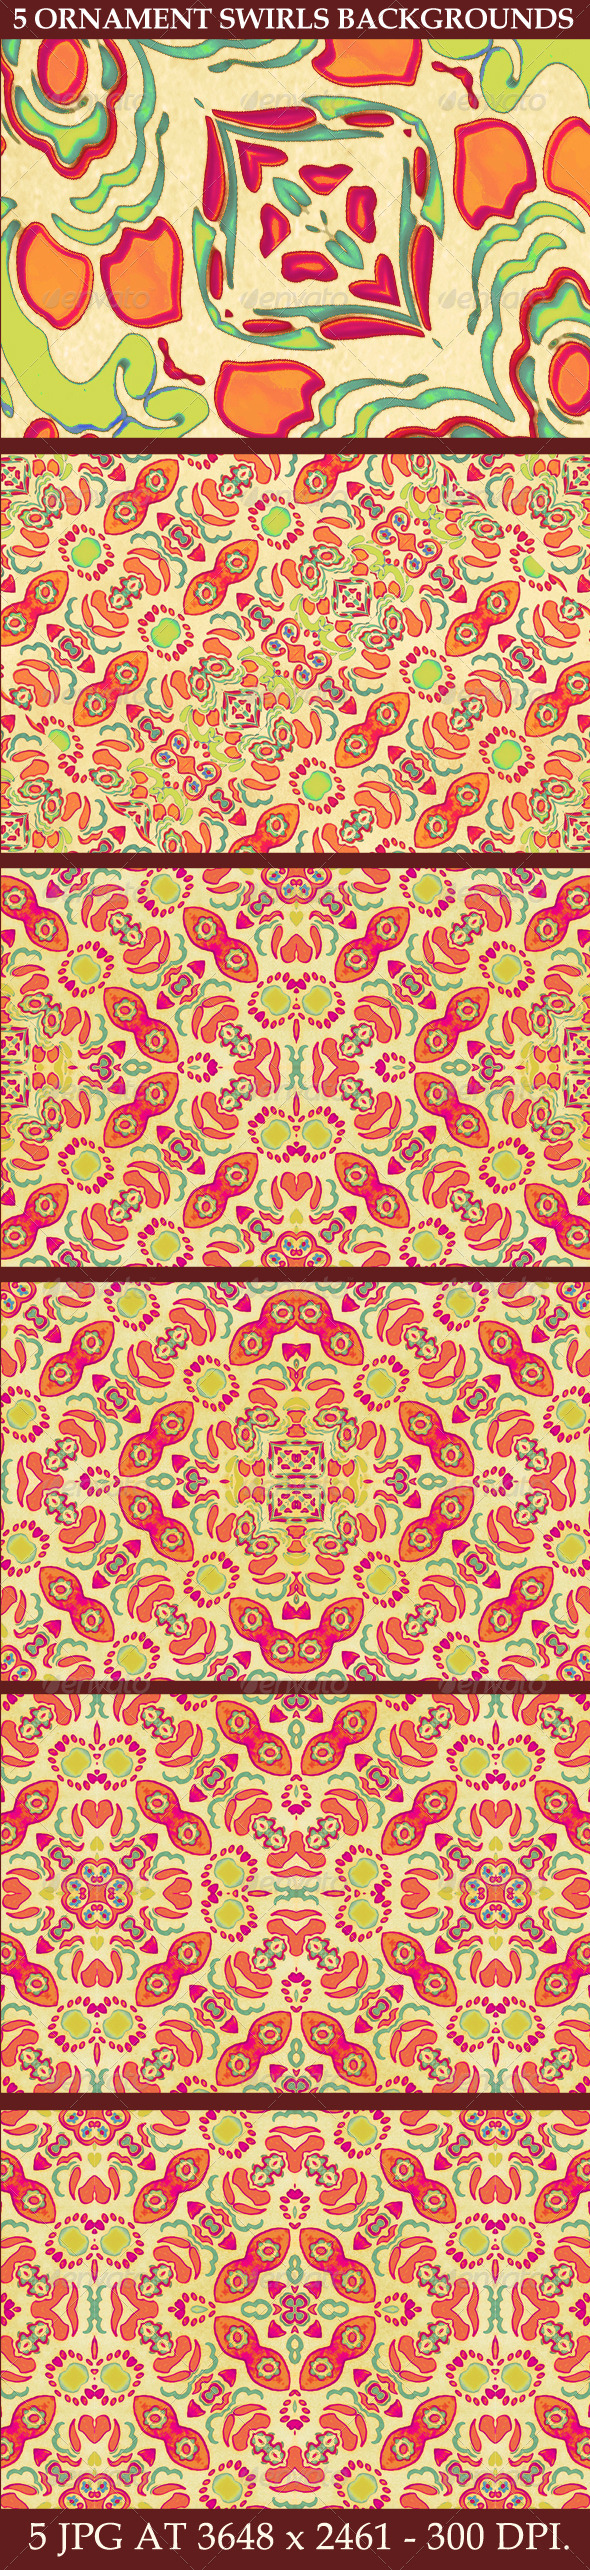 GraphicRiver 5 Multicolored Ornament Swirls Backgrounds 7117995